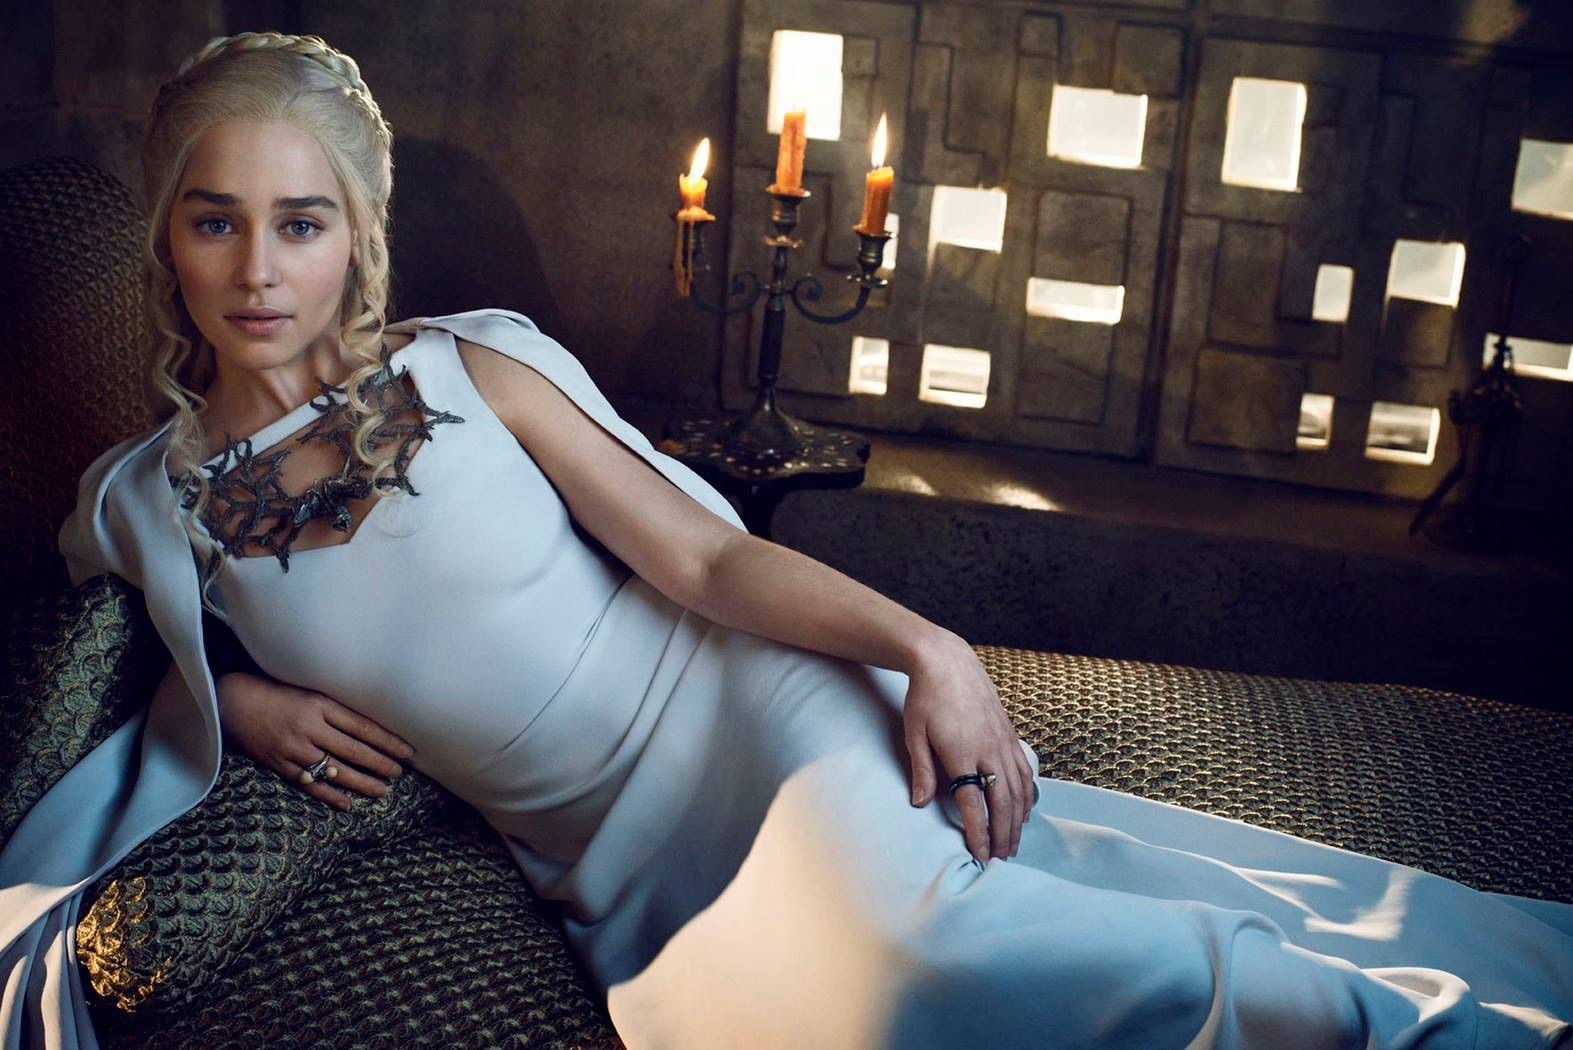 Game Of Thrones Is So Popular It Caused Internet Porn